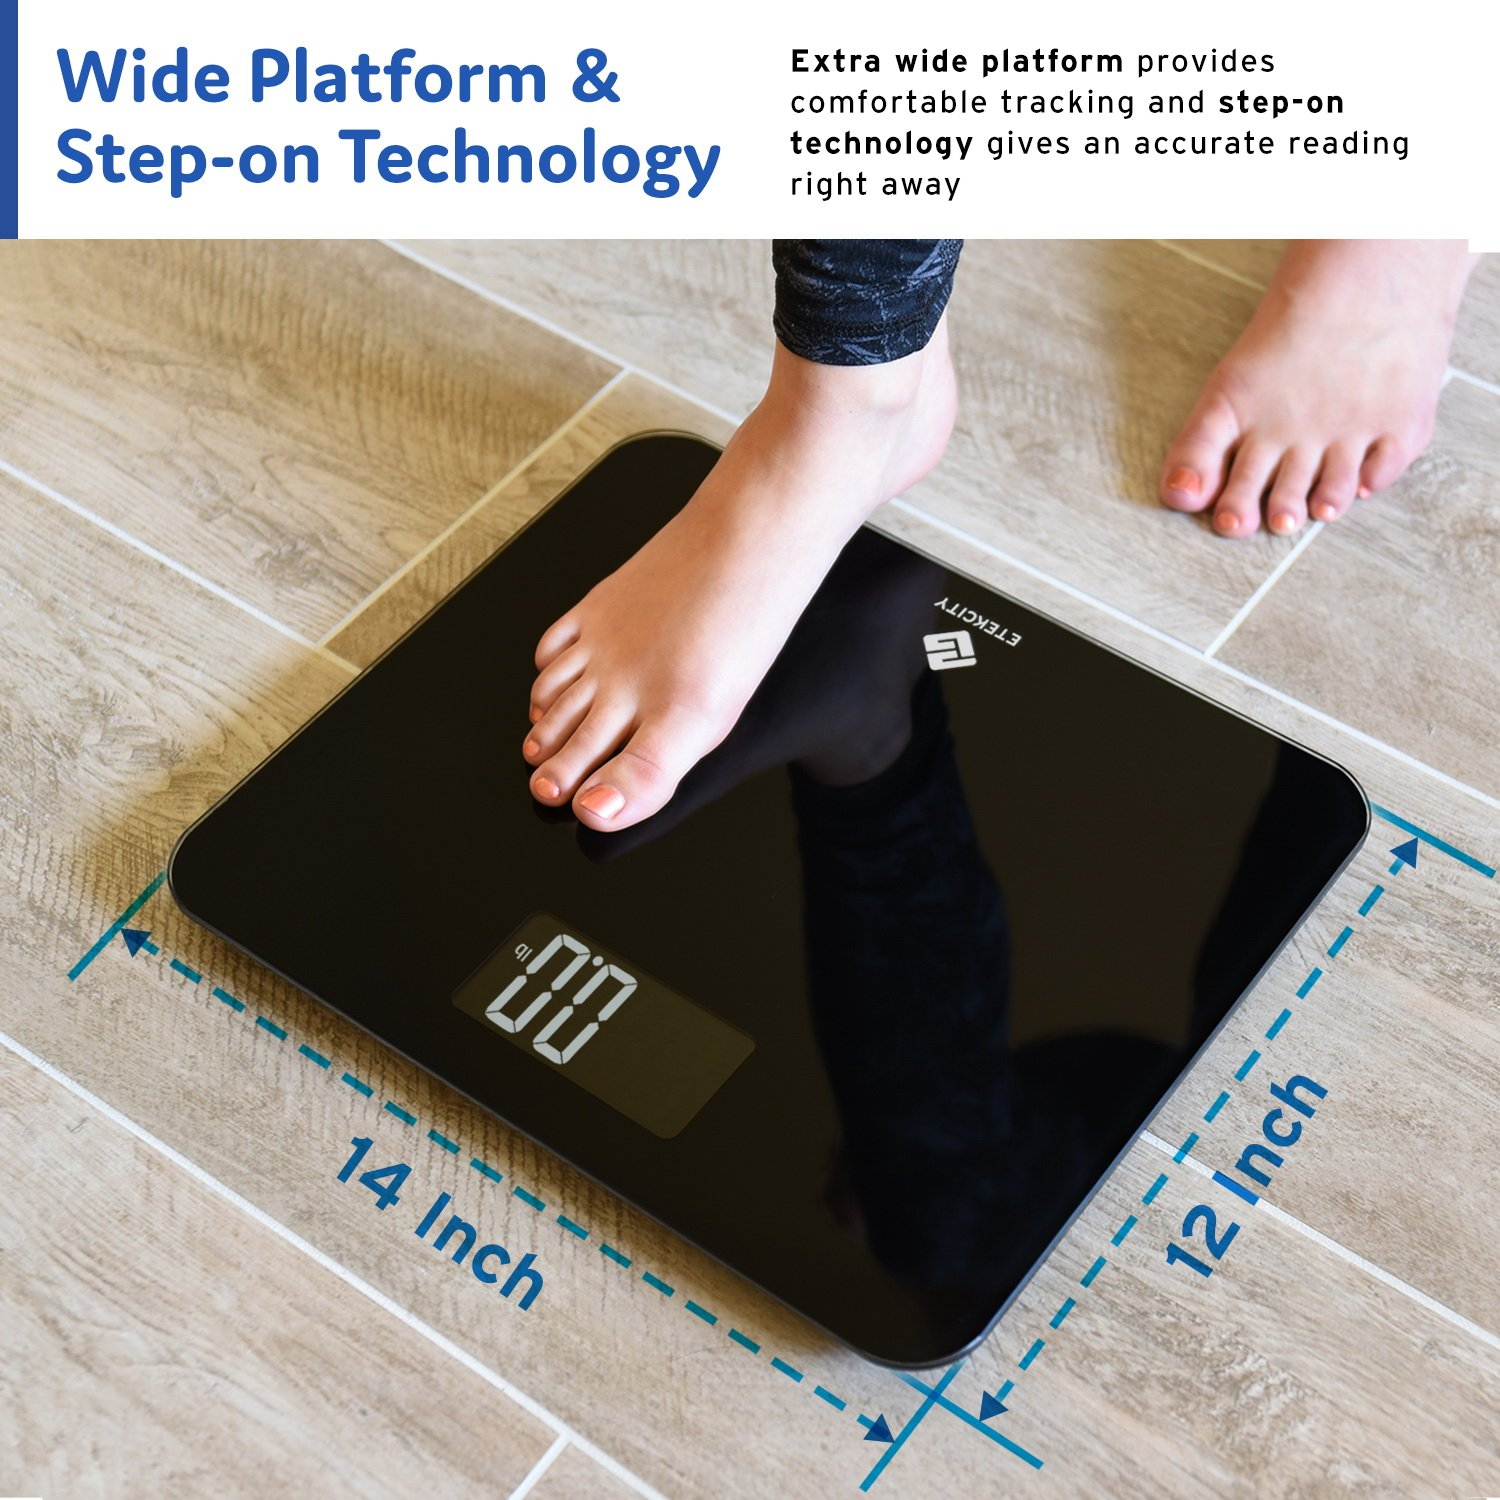 Etekcity Digital Body Weight Bathroom Scale with Step-On Technology, 440 Pounds, Body Tape Measure Included (Black) EB441OB by Etekcity (Image #4)